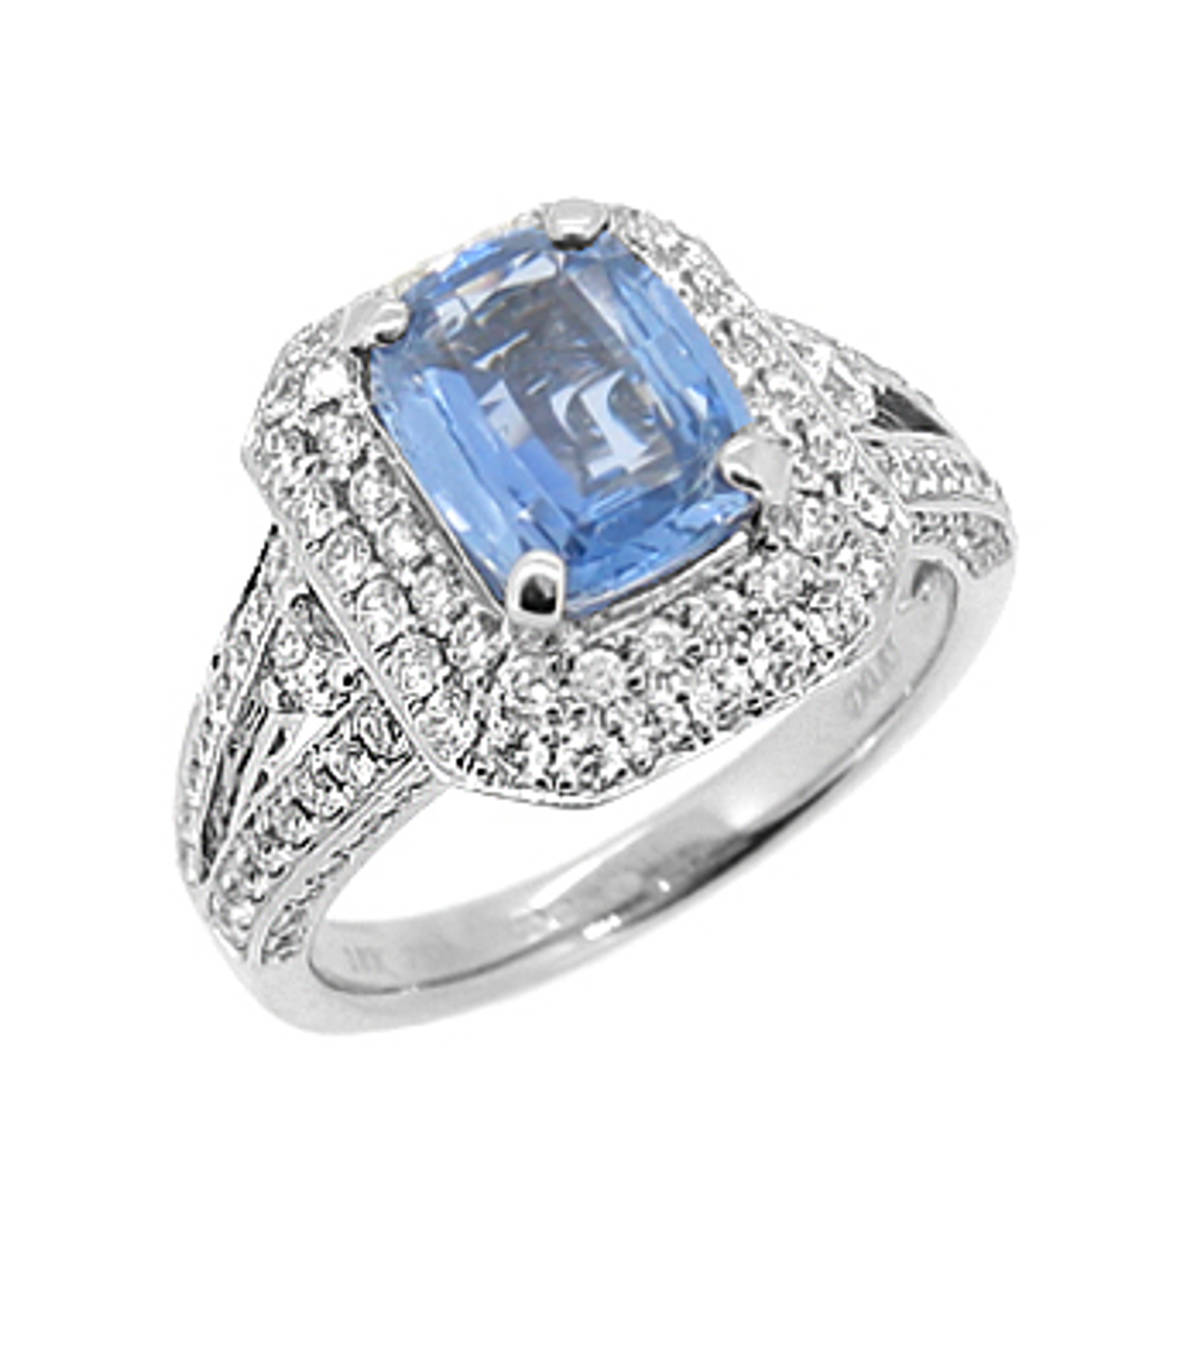 Sapphire and diamond cluster ringPictured item: sapphire total 1.72ct/diamonds total 0.85ct set in 18k white gold